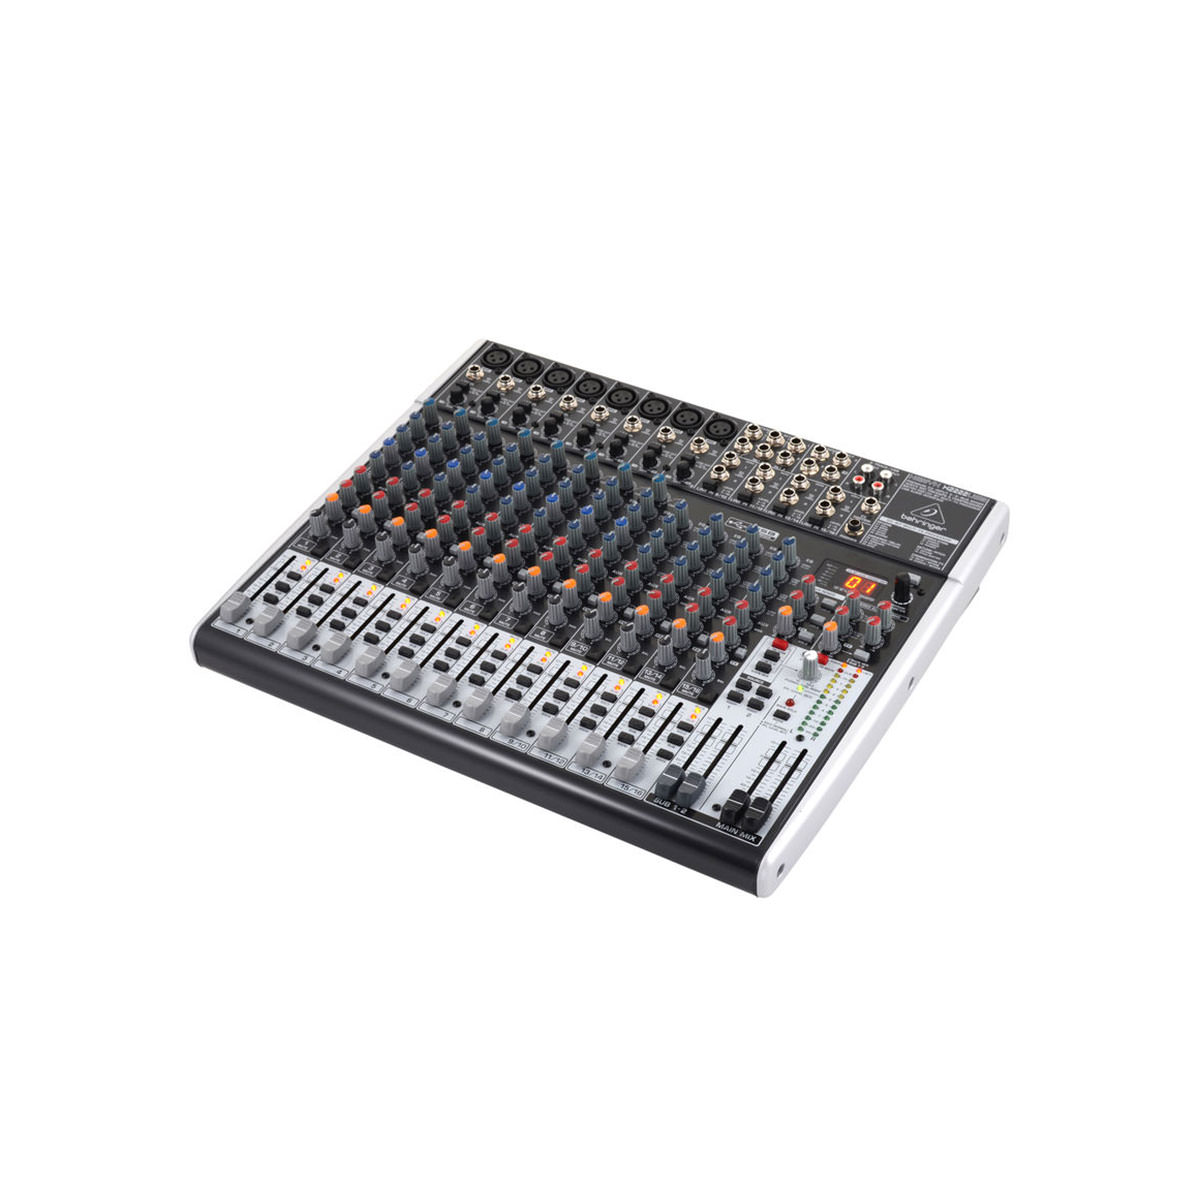 Behringer XENYX X2222 USB Mixer with Effects